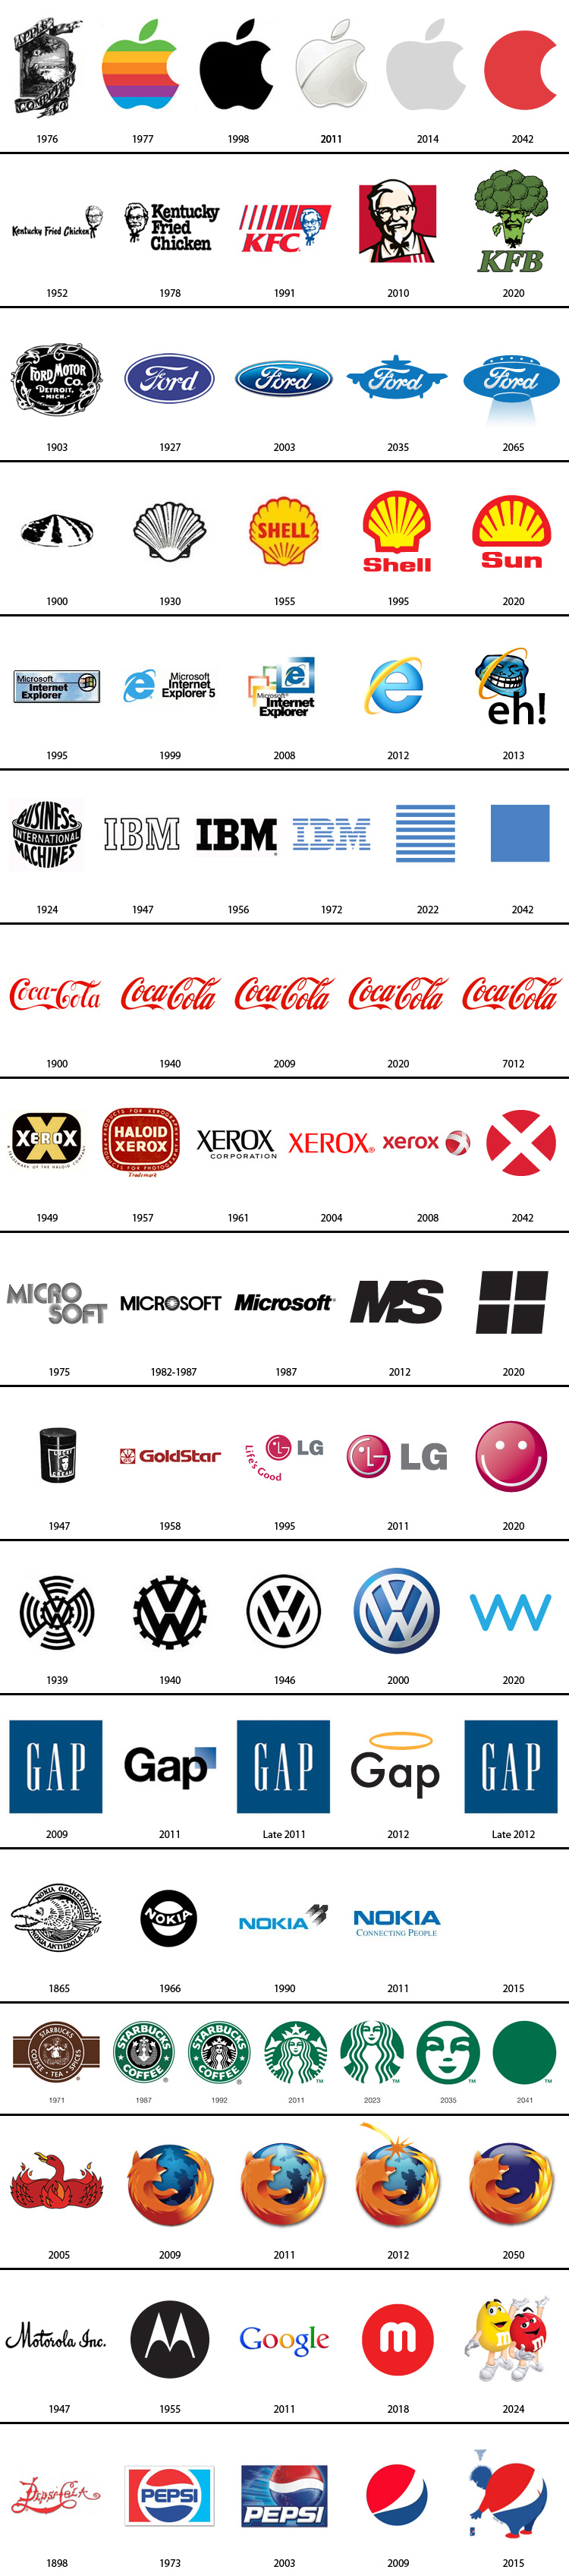 The Past and Future of Famous Brands